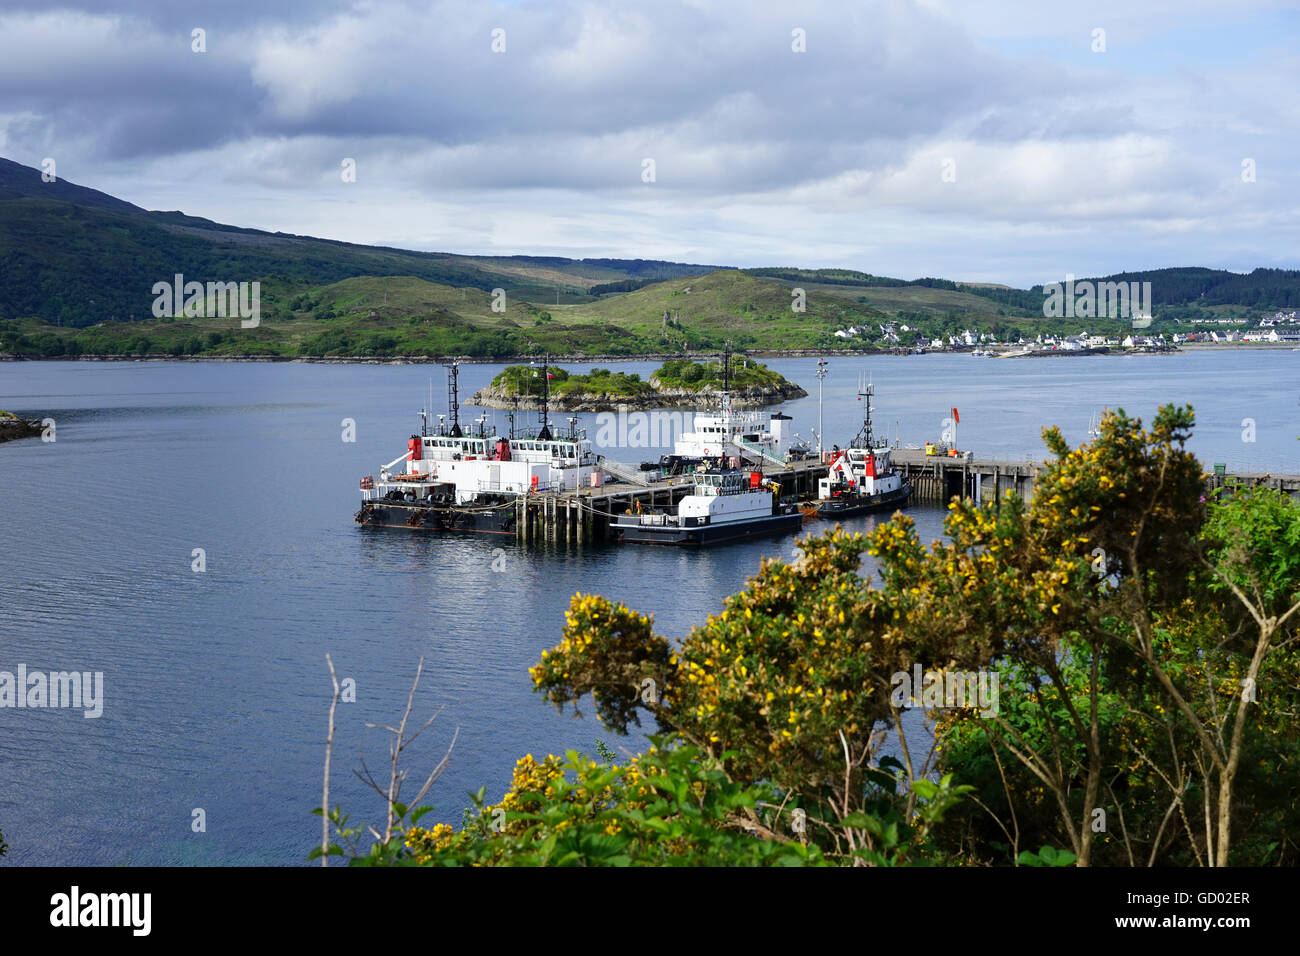 Tugs and working boats moored in Loch Alsh, Highland, Scotland, UK. - Stock Image